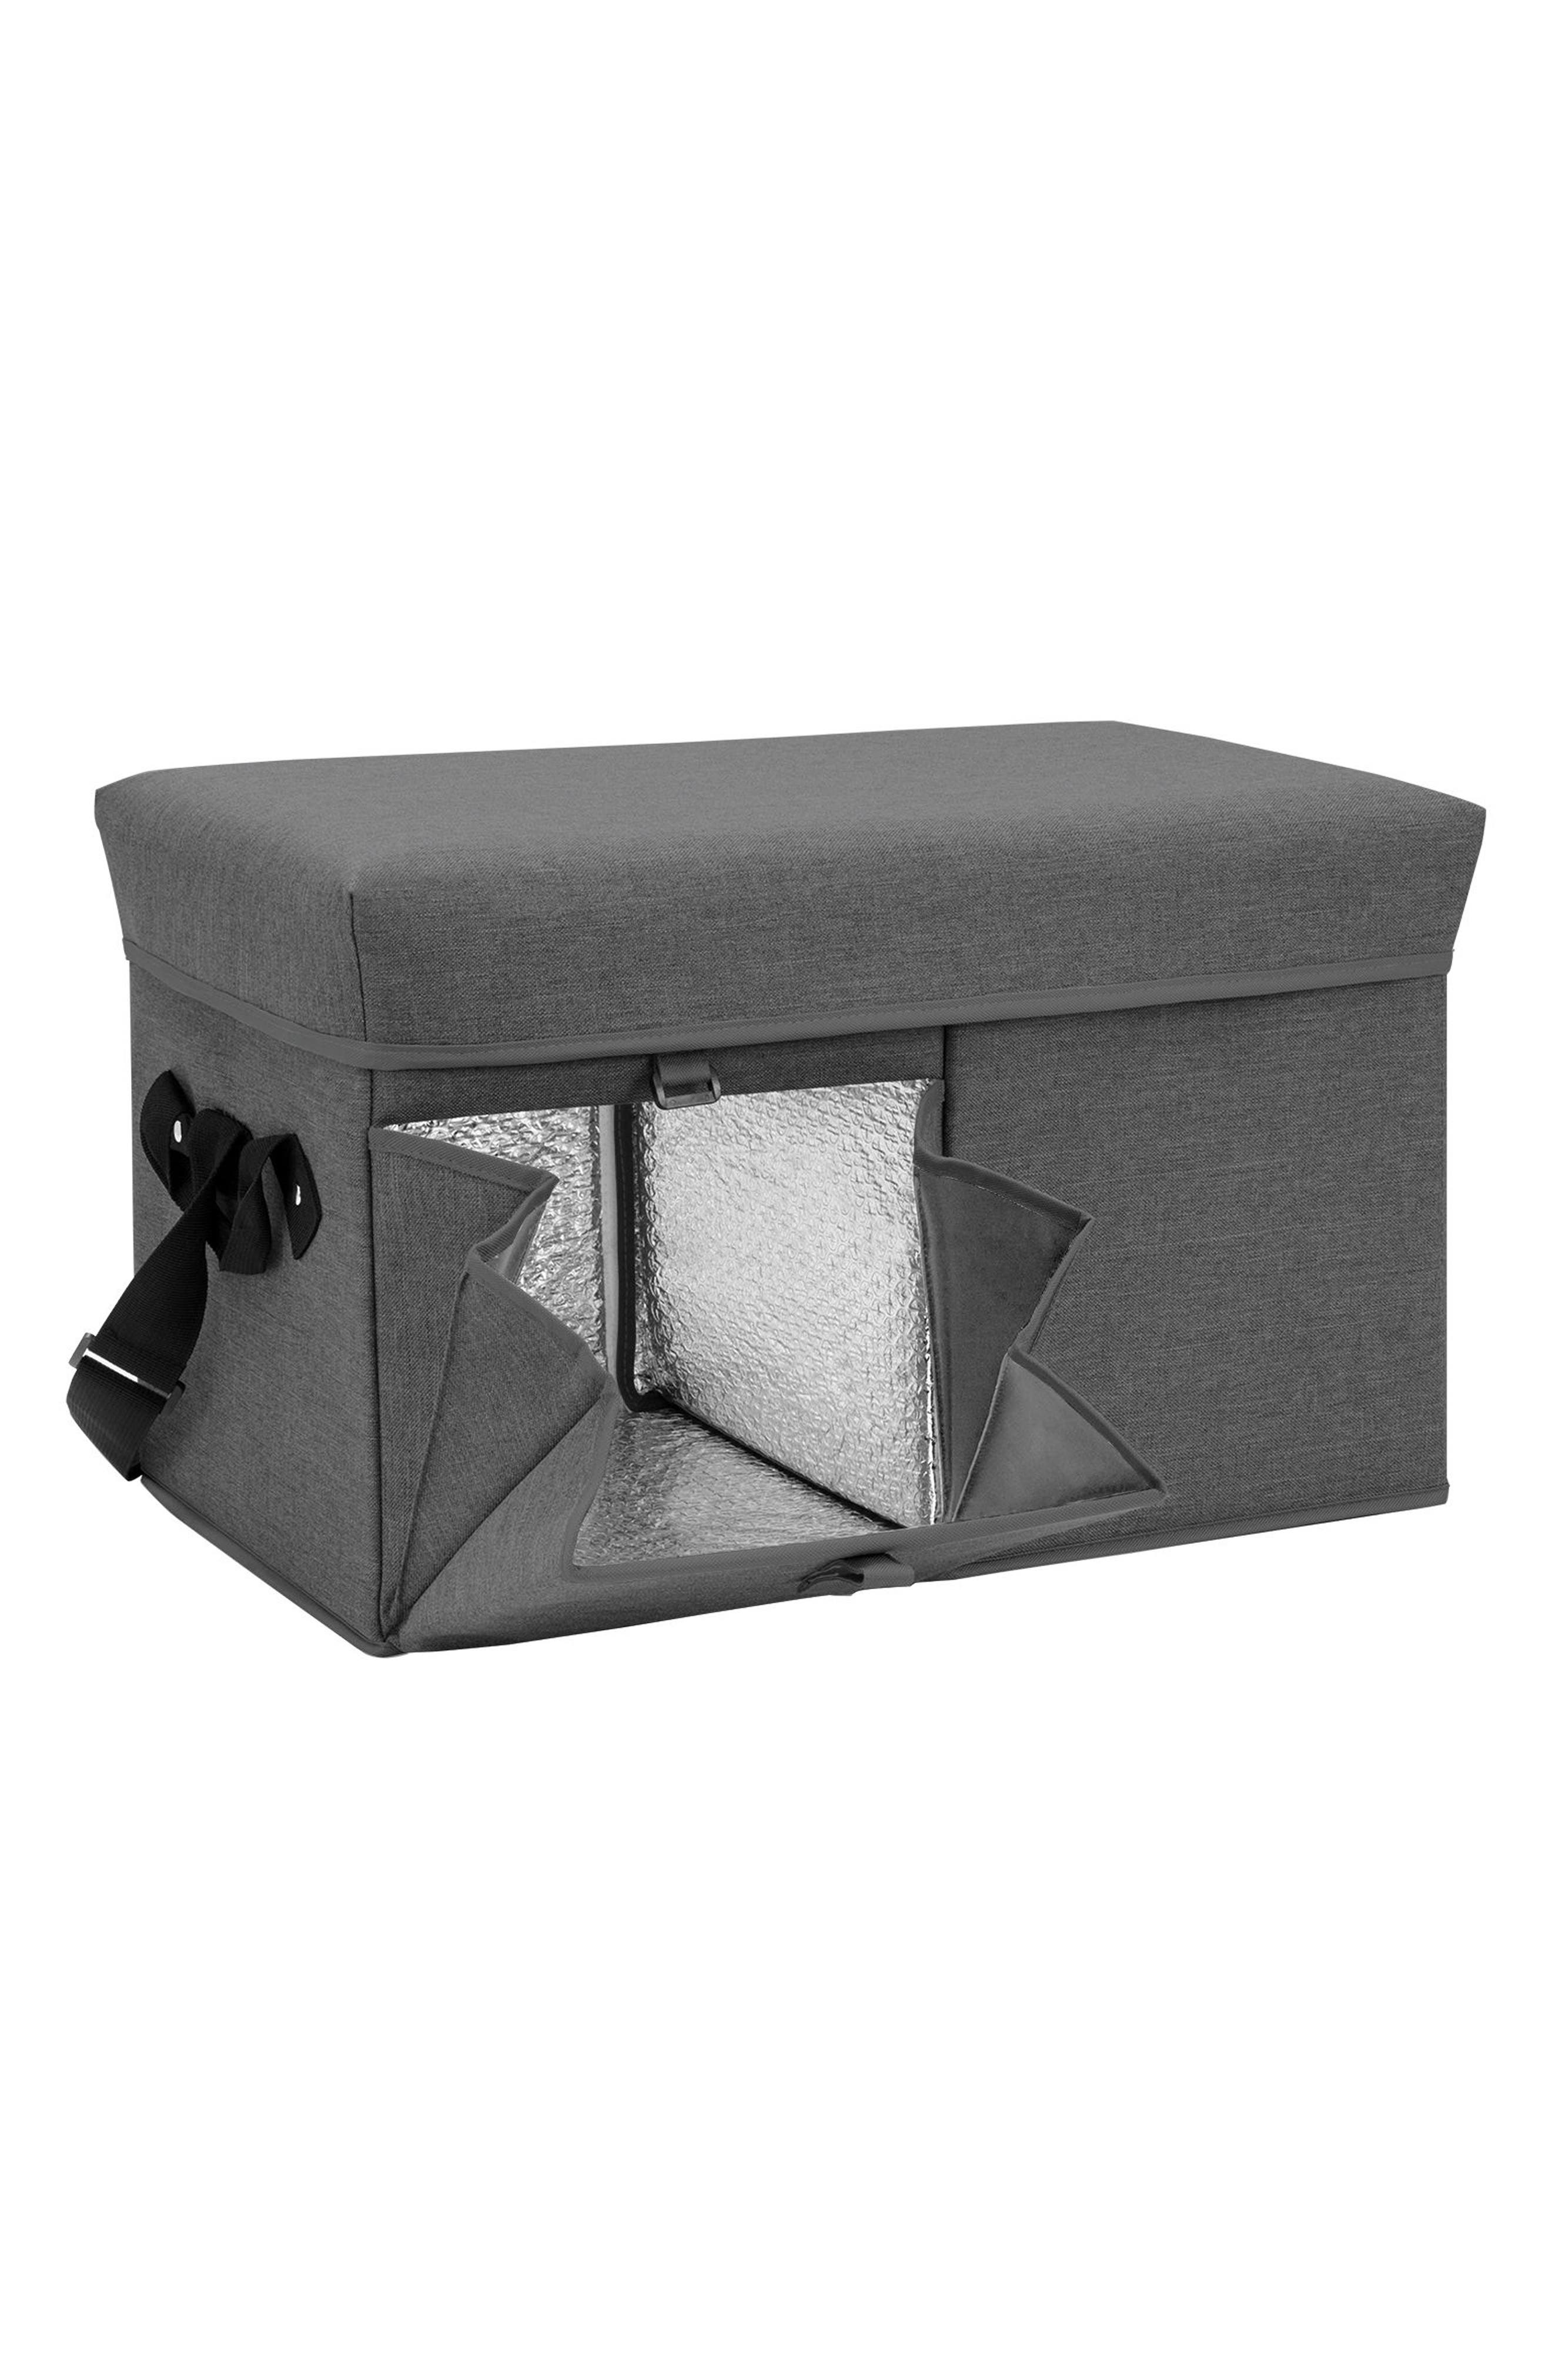 Picnic Time Ottoman Cooler,                             Alternate thumbnail 2, color,                             020